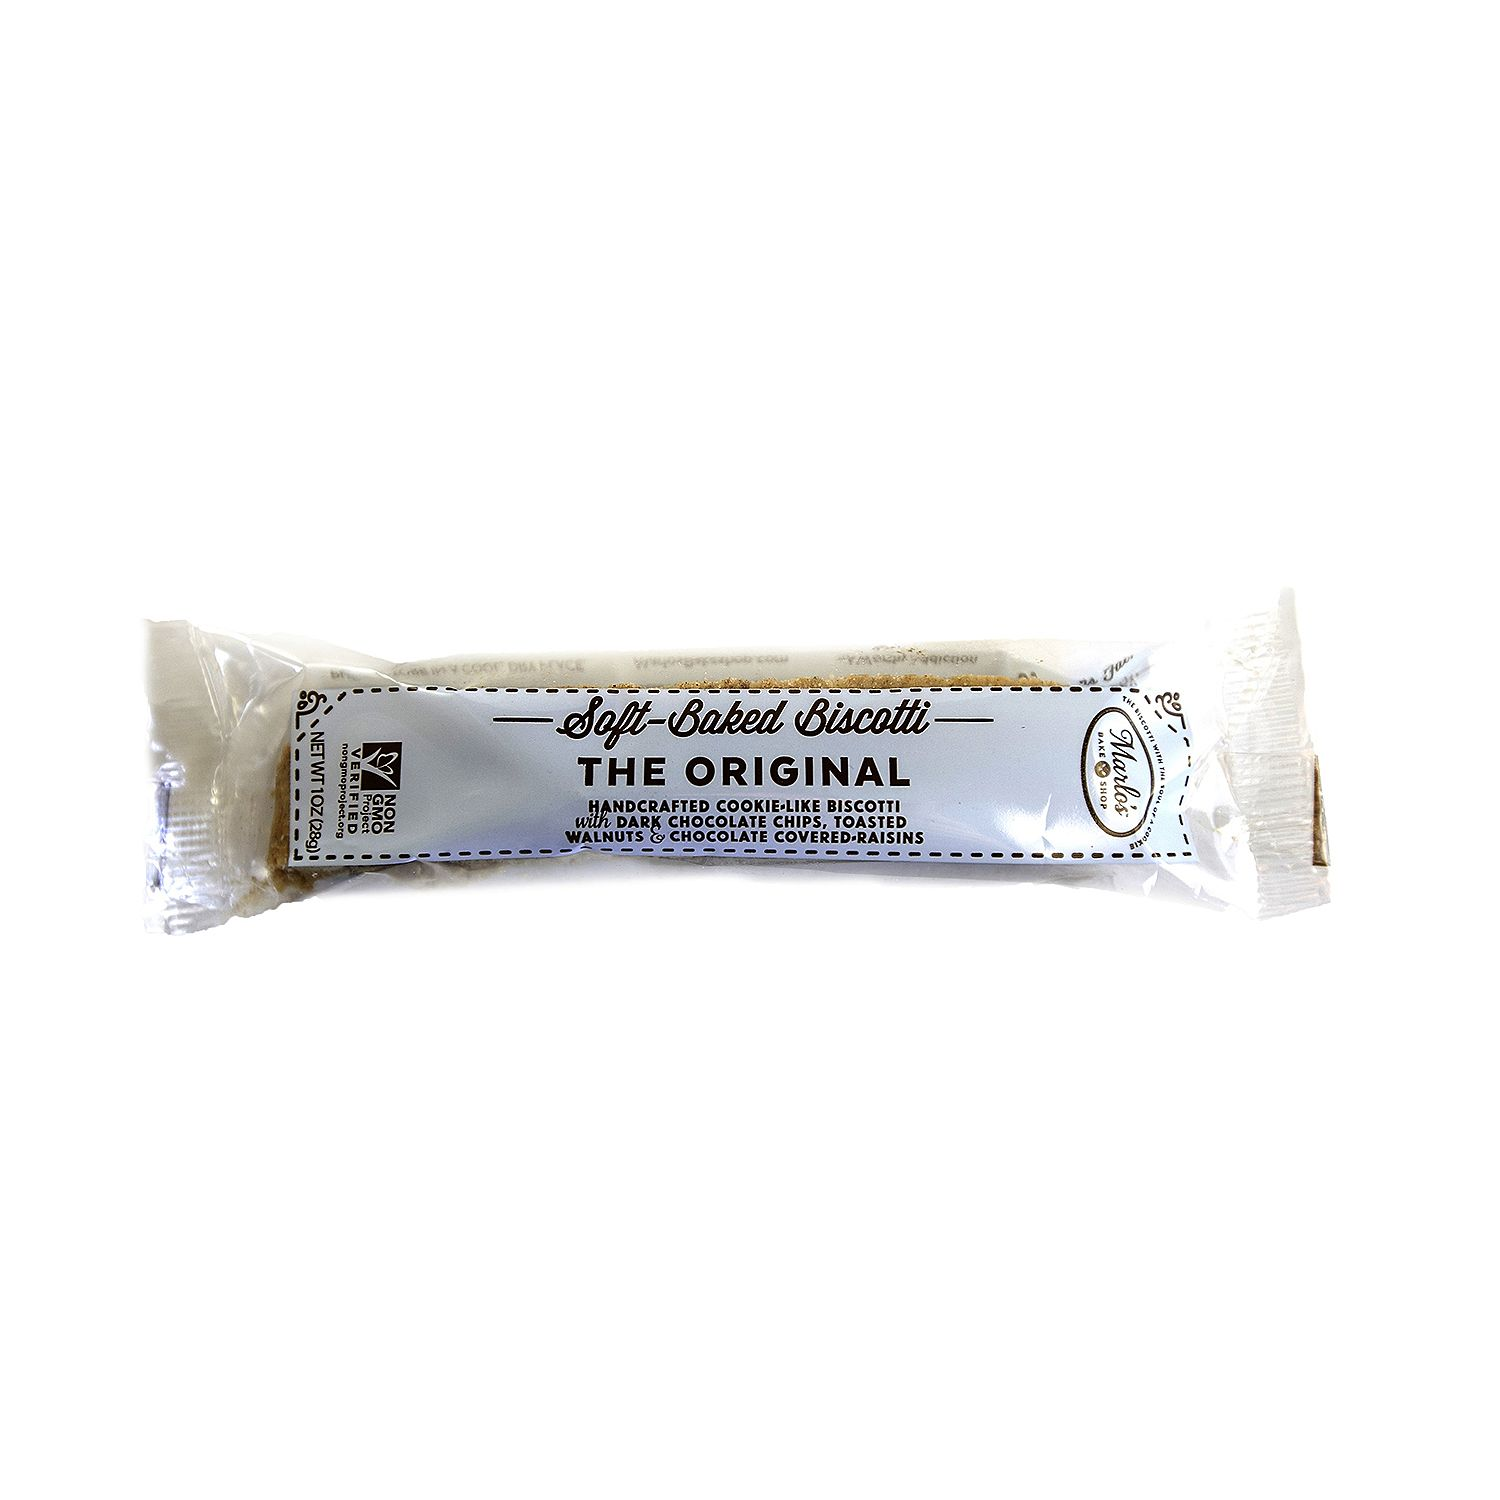 The Original, Single Wrapped Soft-Baked Biscotti (24 ct.) by Marlo's Bakeshop